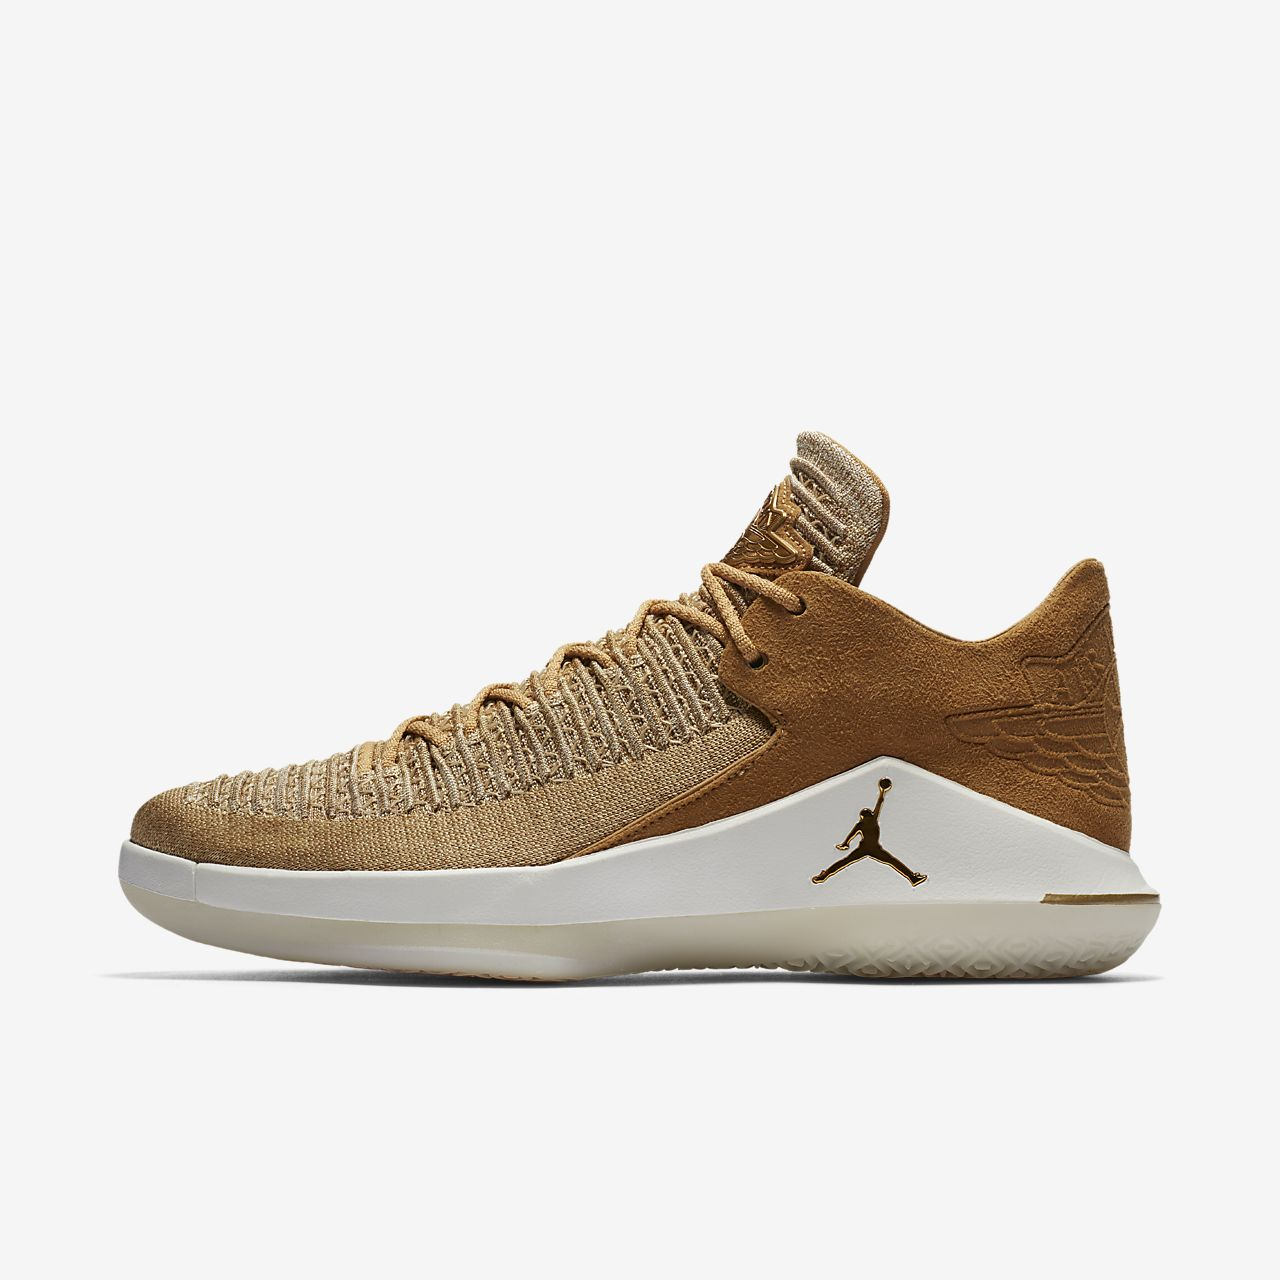 Air Jordan XXXII Low Men's Basketball Shoe